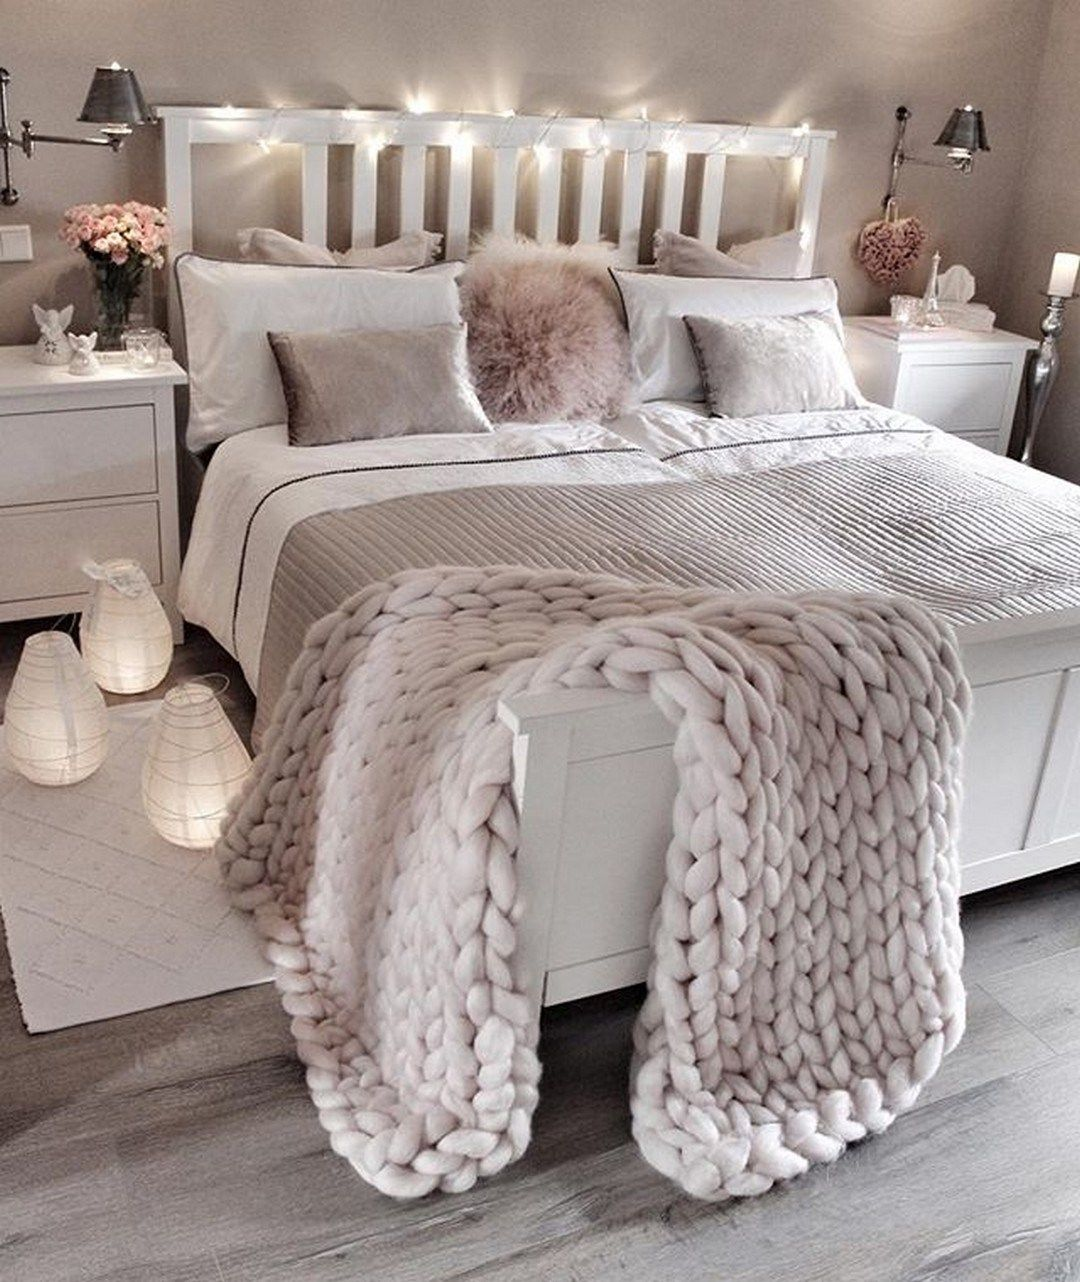 Best Ideas To Make Your Bedroom Extra Cozy And Romantic 21 Bedroom Design Bedroom Makeover Bedroom Decor